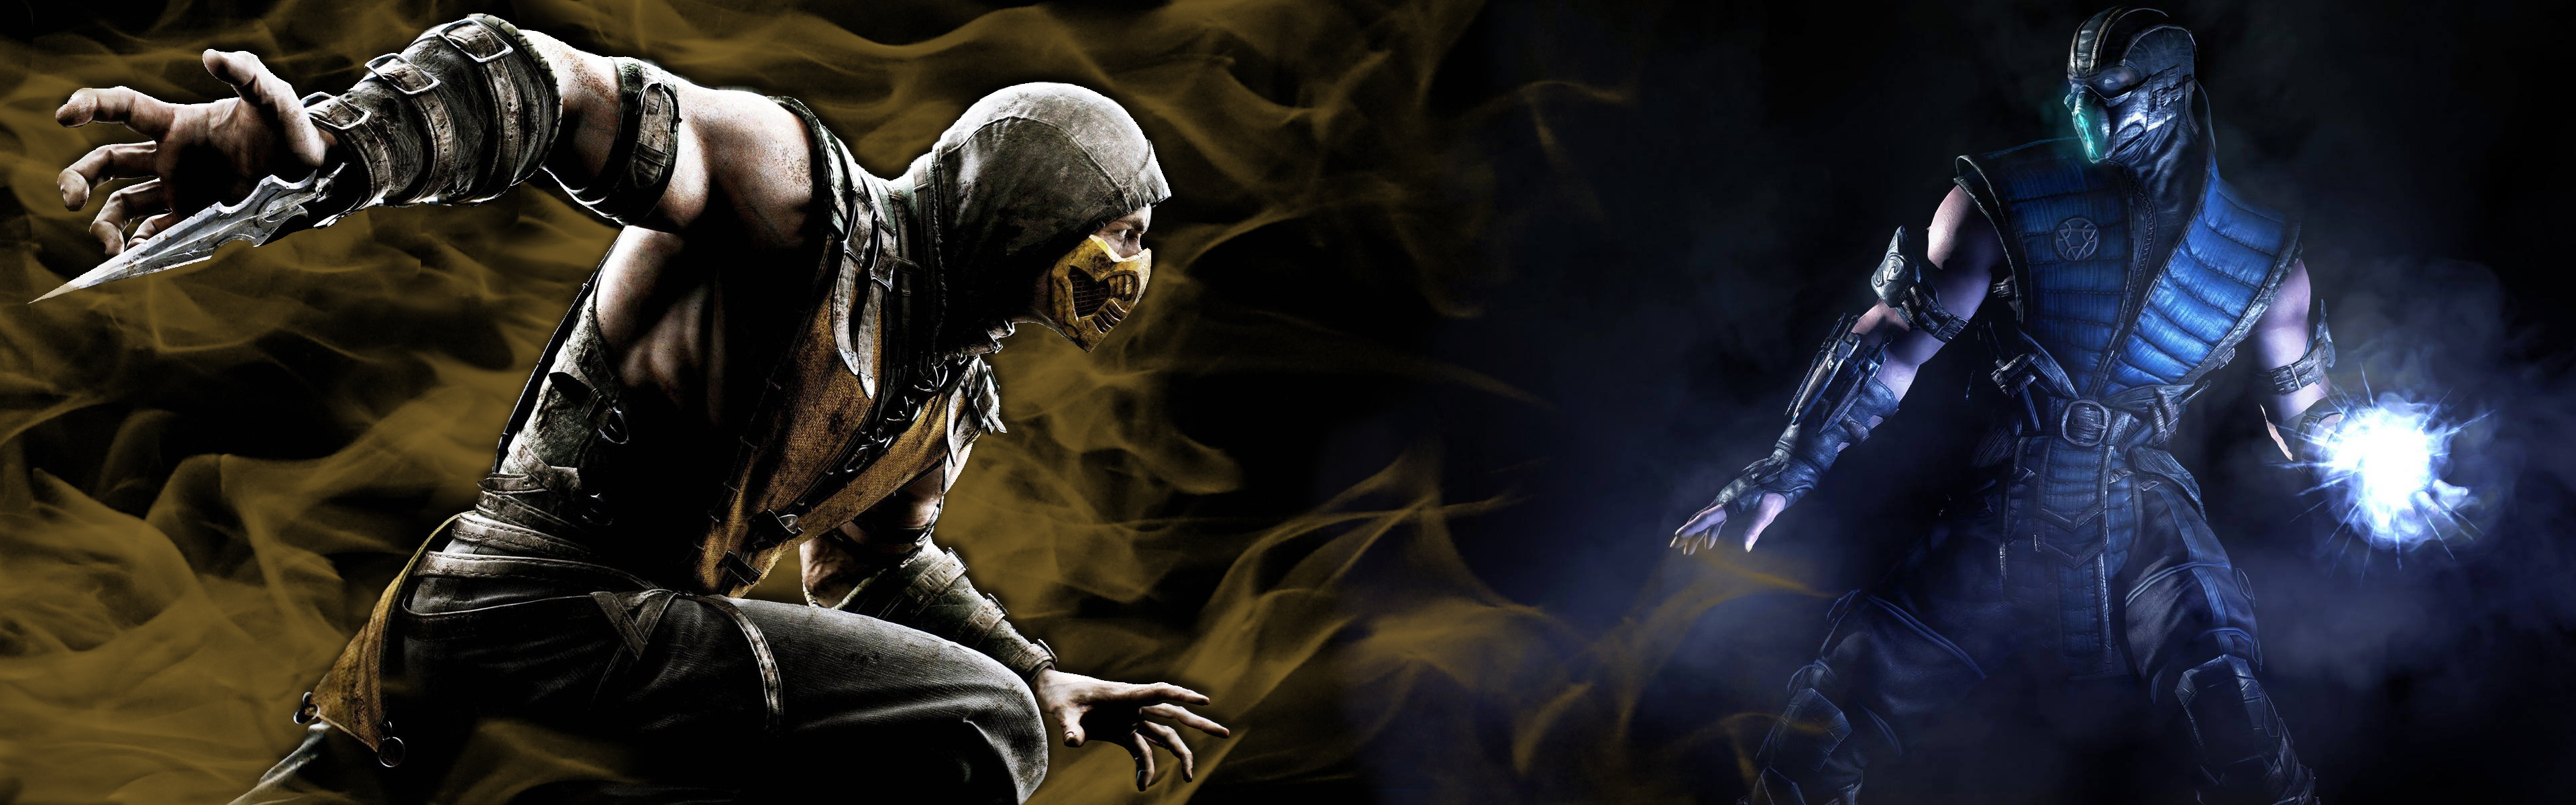 Mortal Kombat X Background Scorpion vs Sub Zero by Hentiger5544 on 3840x1200